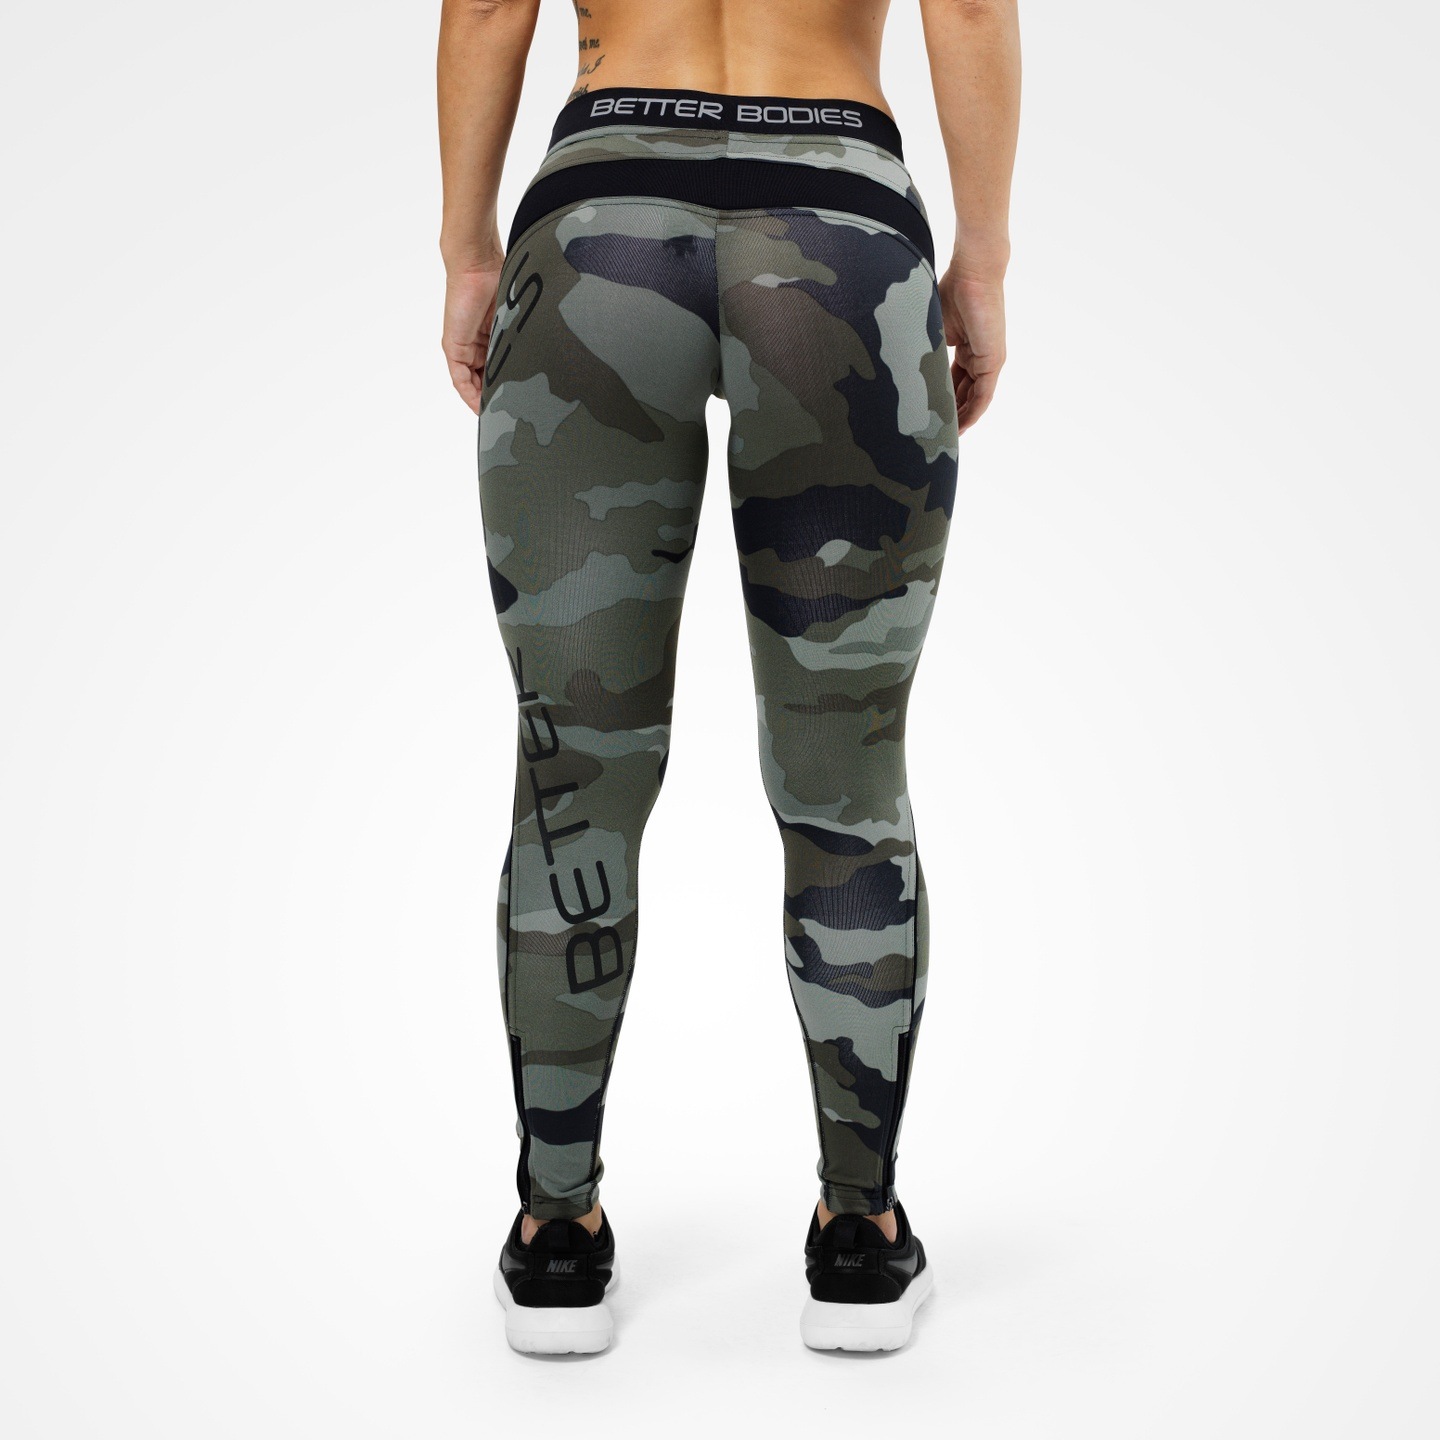 b458cba06bce8 A product image of Camo Long Tights, Green Camoprint ...